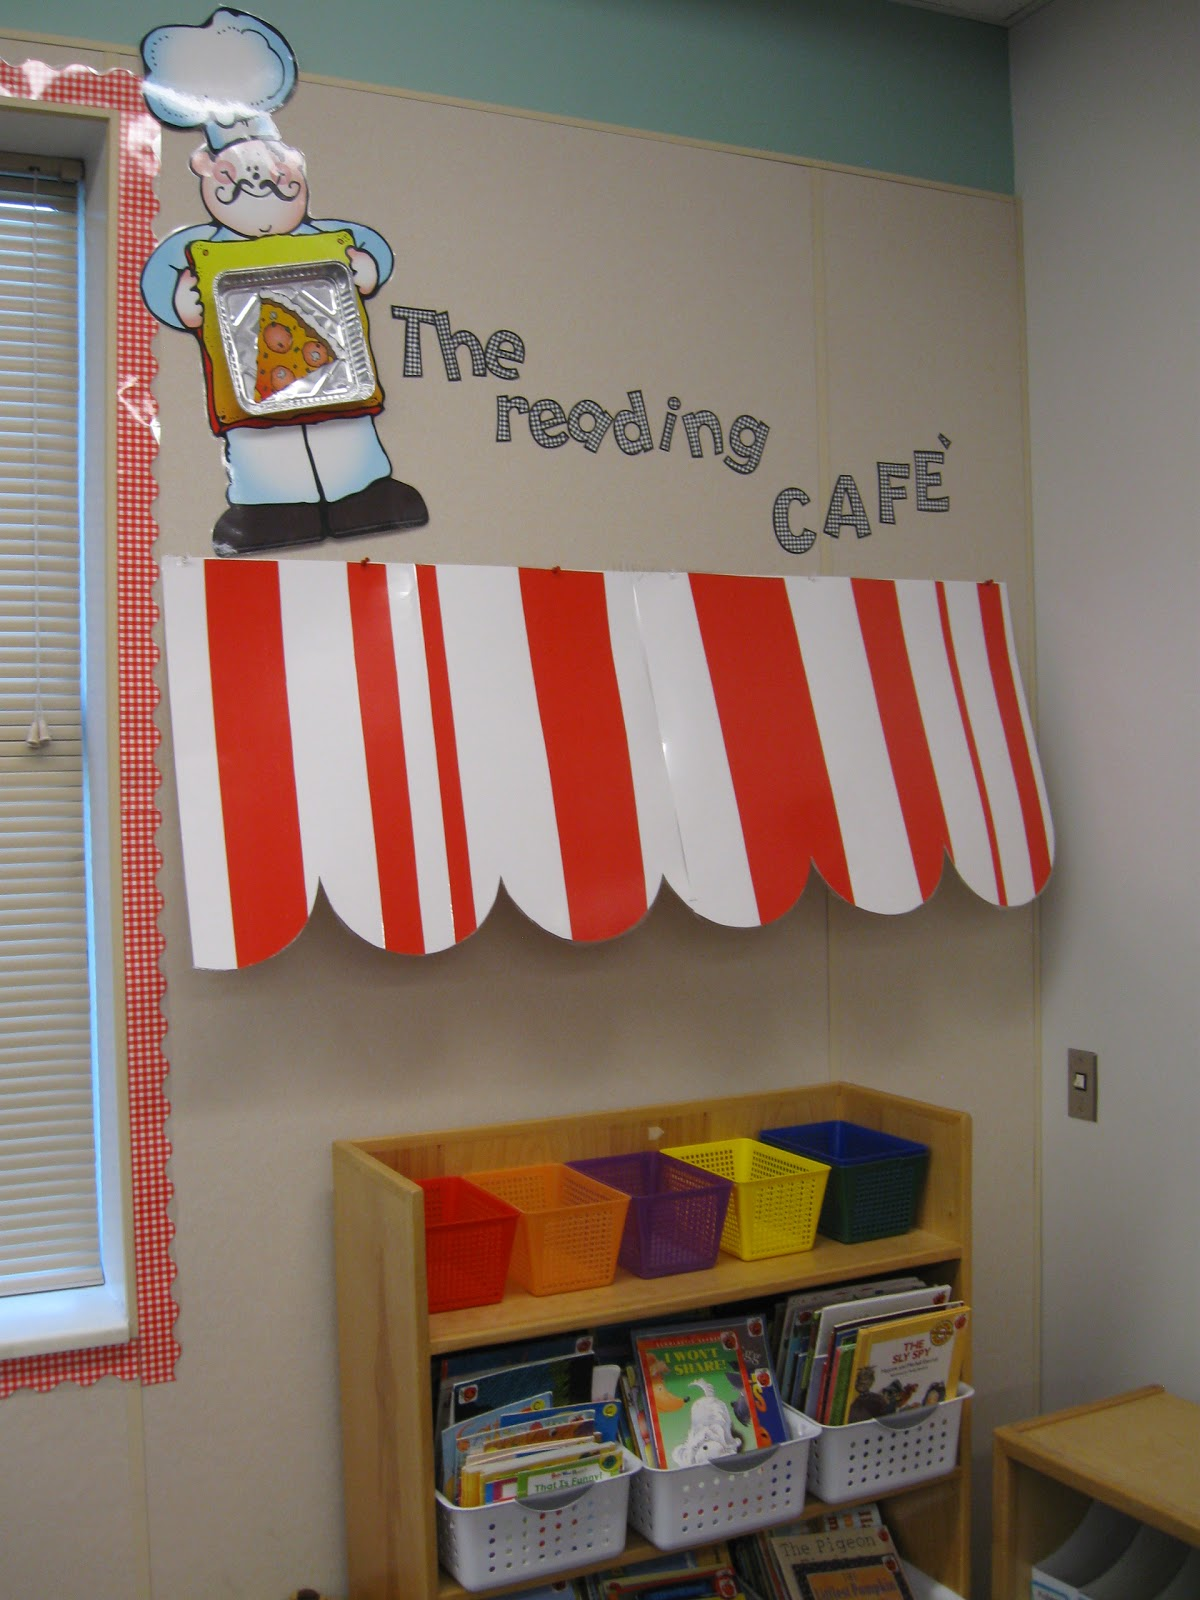 Classroom Theme Ideas Cafe ~ What the teacher wants s cookin in mrs smith